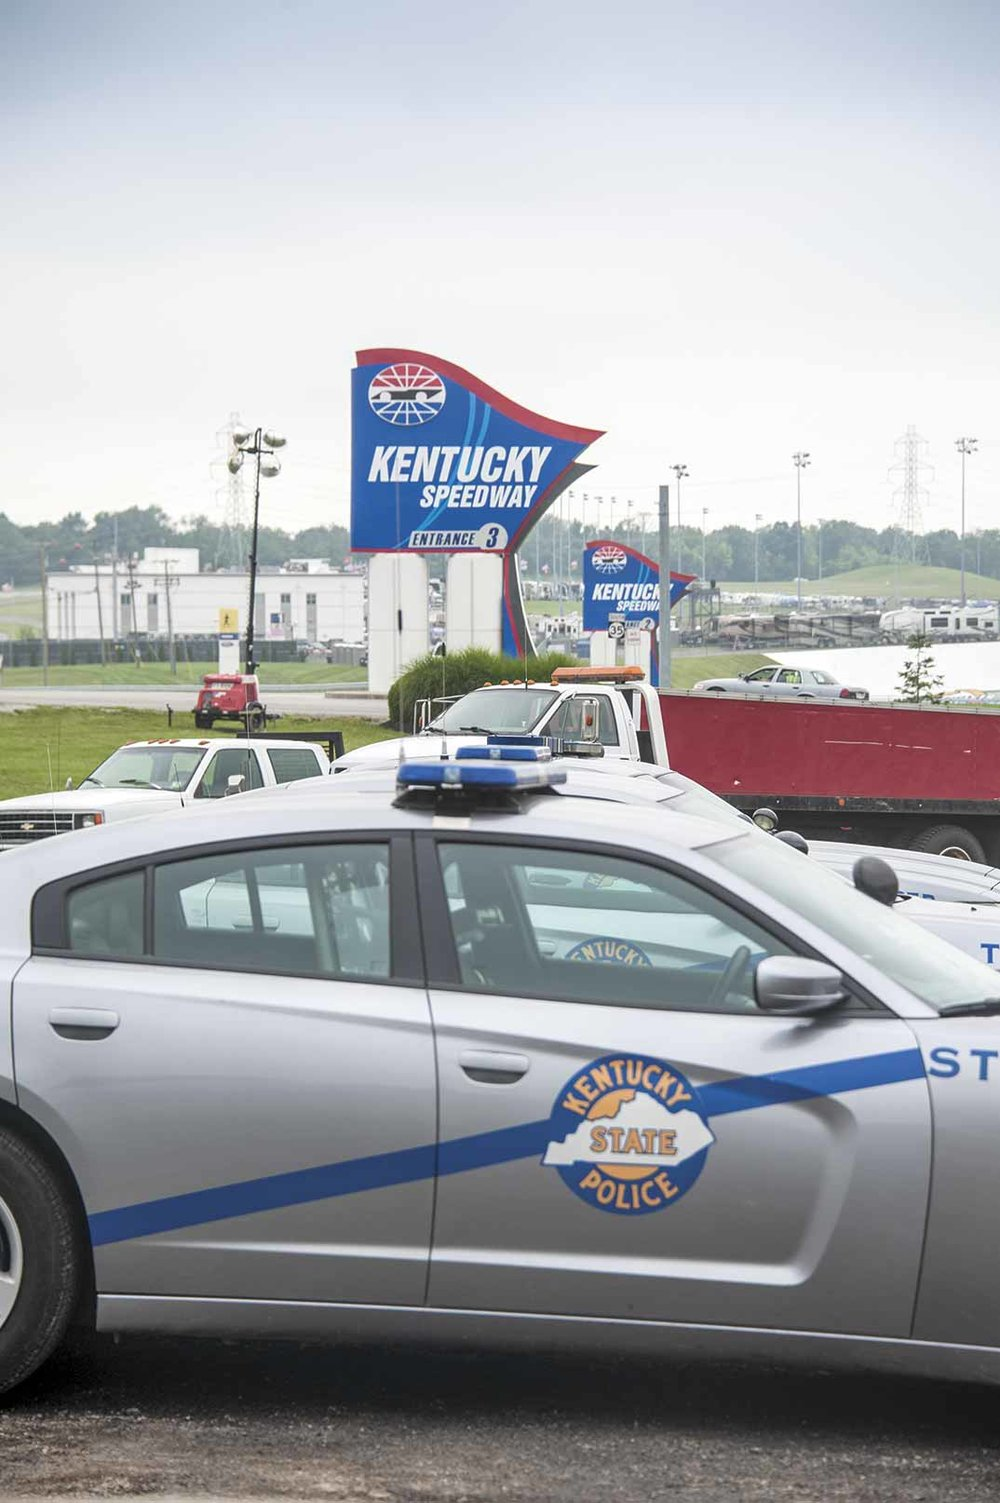 The Kentucky Speedway adds additional challenges to the Gallatin County Sheriff's Office. Each year approximately 80,000 people flood the speedway and surrounding campgrounds. (Photo by Jim Robertson)